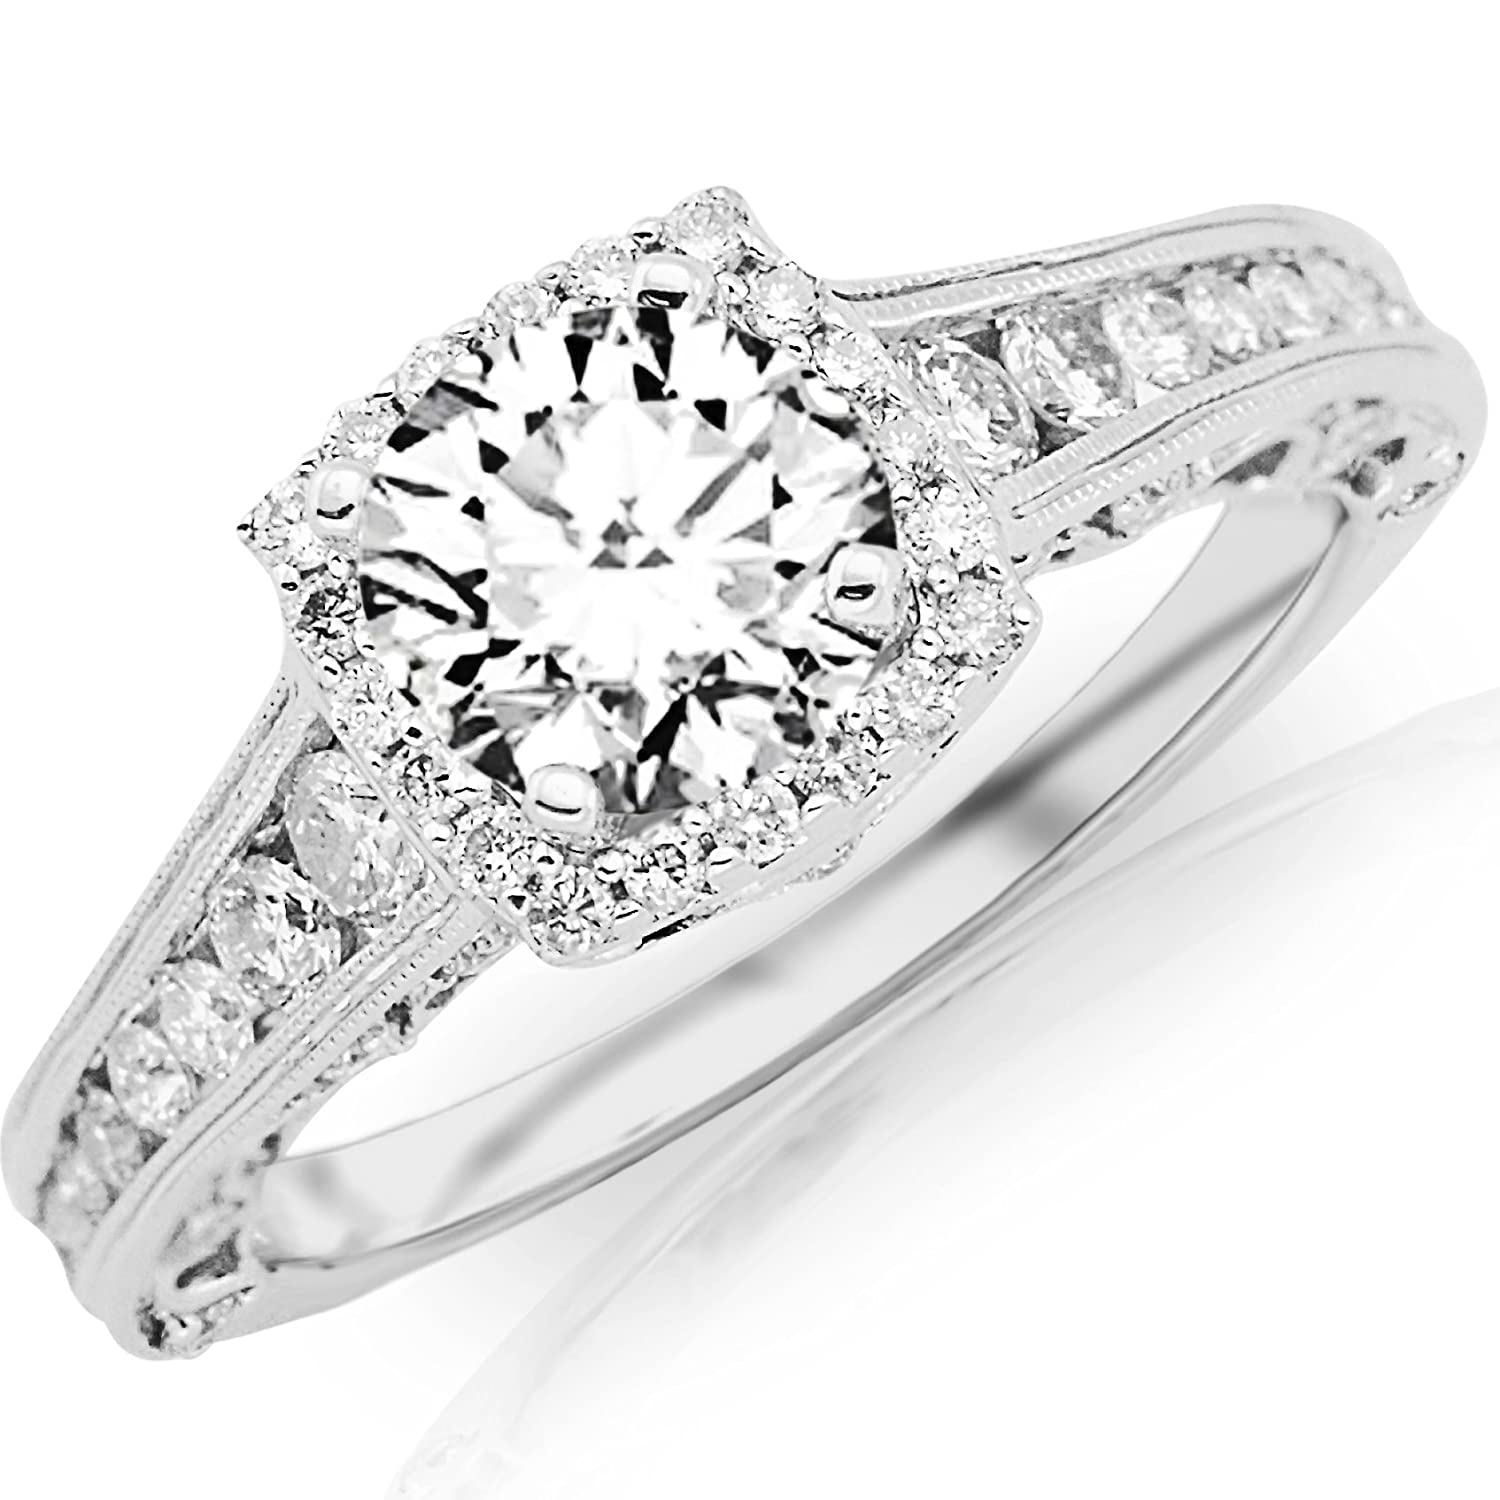 and product jewery gems engagement dk st maarten online round brilliant rings stores martin ring diamond in at store best